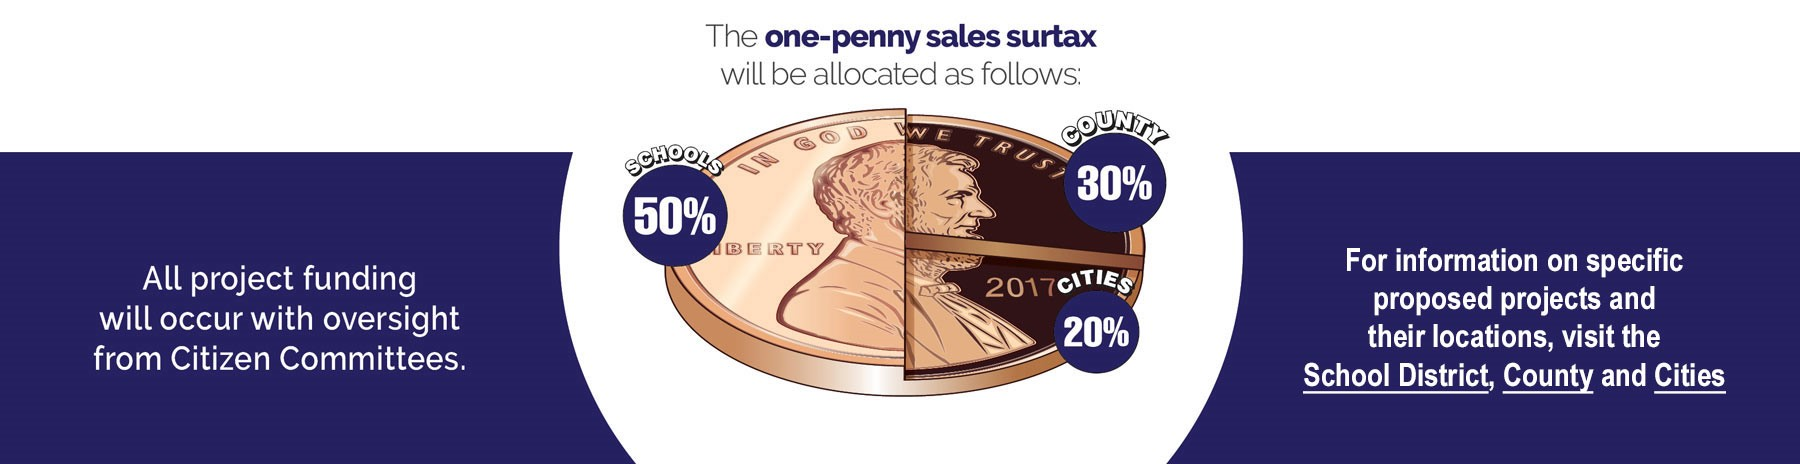 Penny Sales Tax Picture for Website